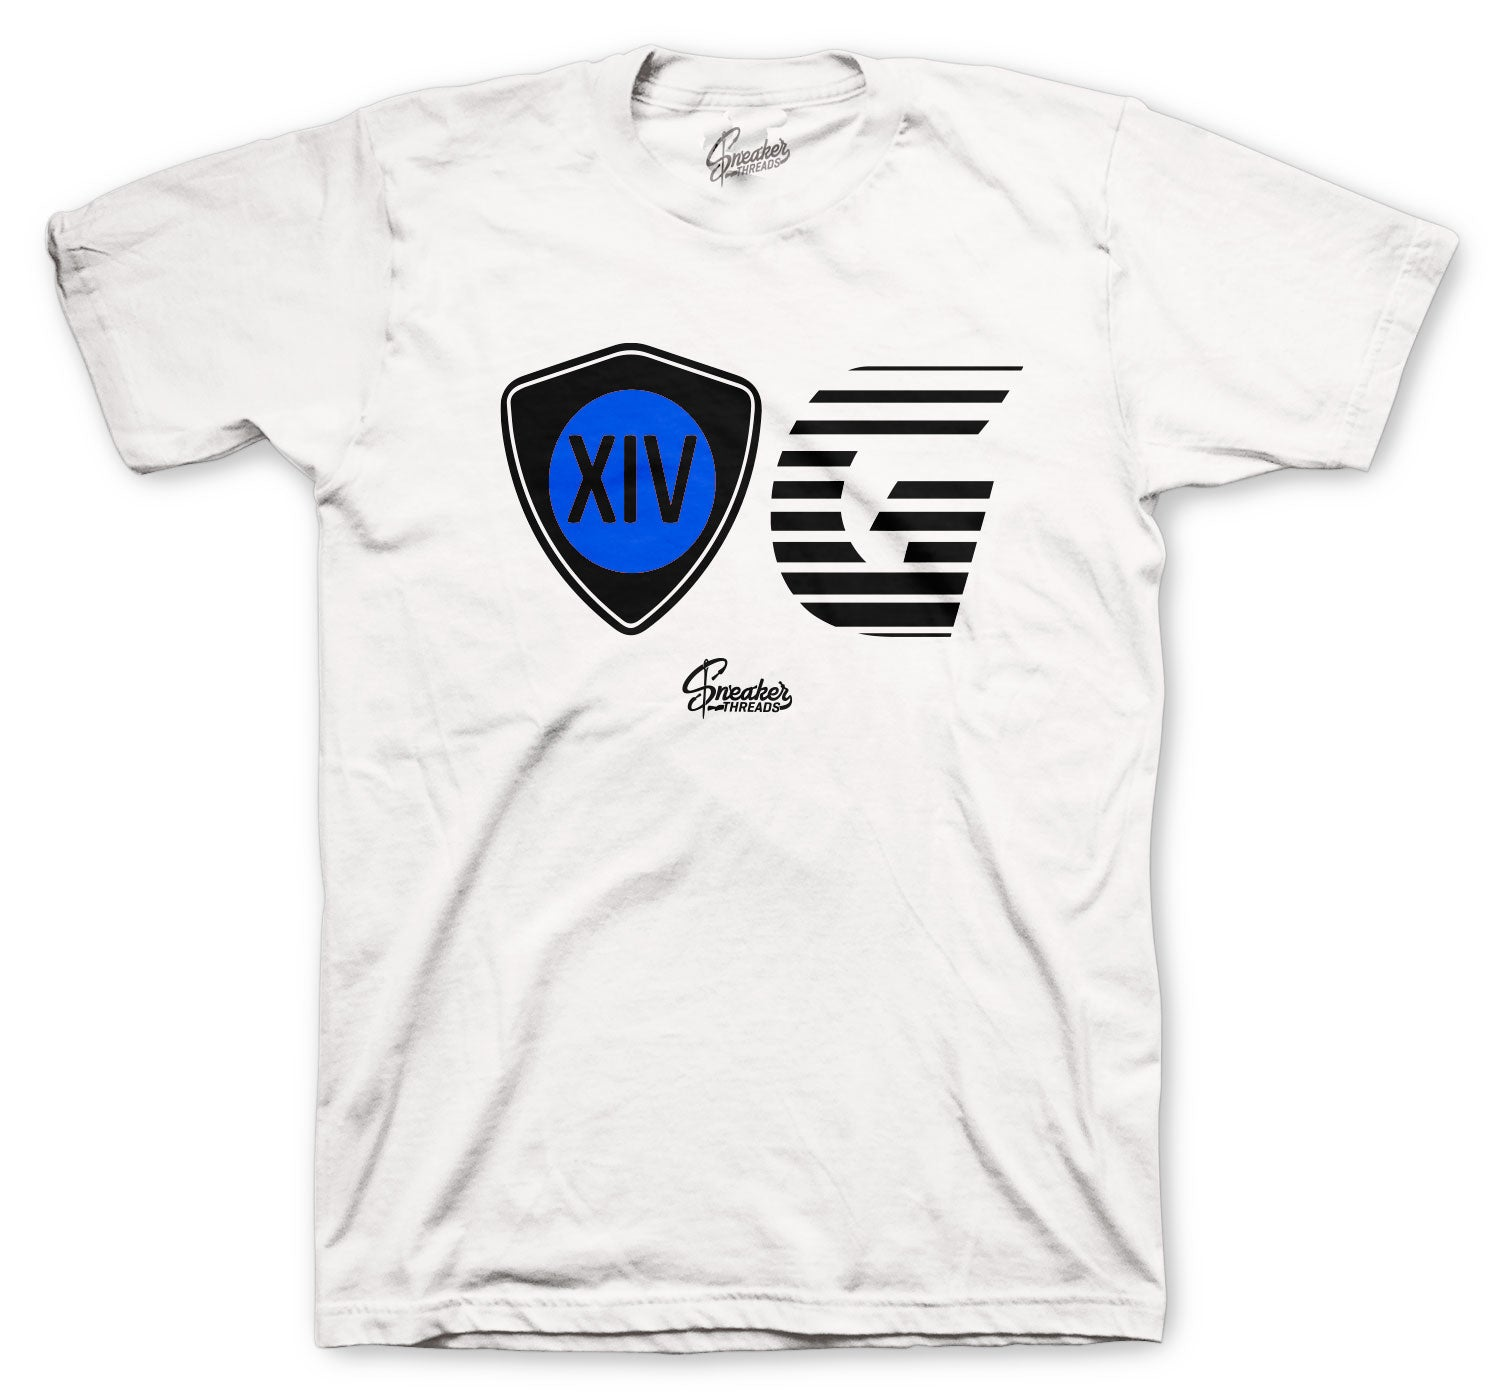 Jordan 14 Hyper Royal Shirt - OG - White